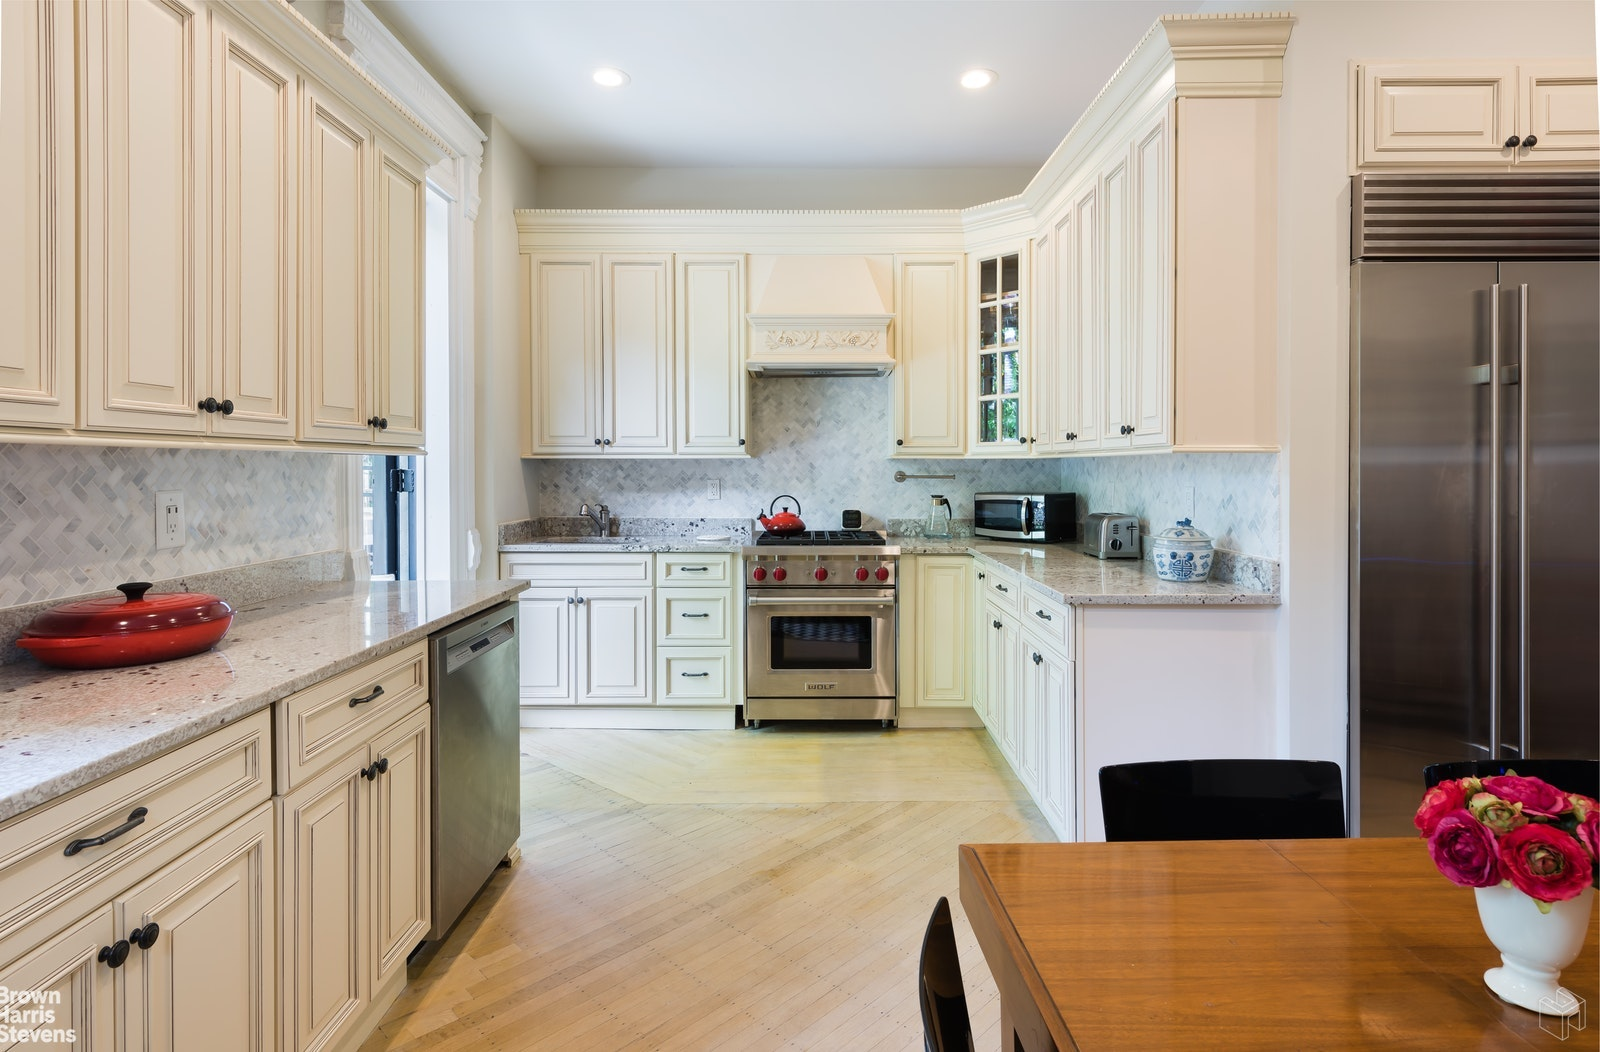 731 Putnam Avenue, Bedford Stuyvesant, Brooklyn, NY, 11221, $2,675,000, Property For Sale, Halstead Real Estate, Photo 6